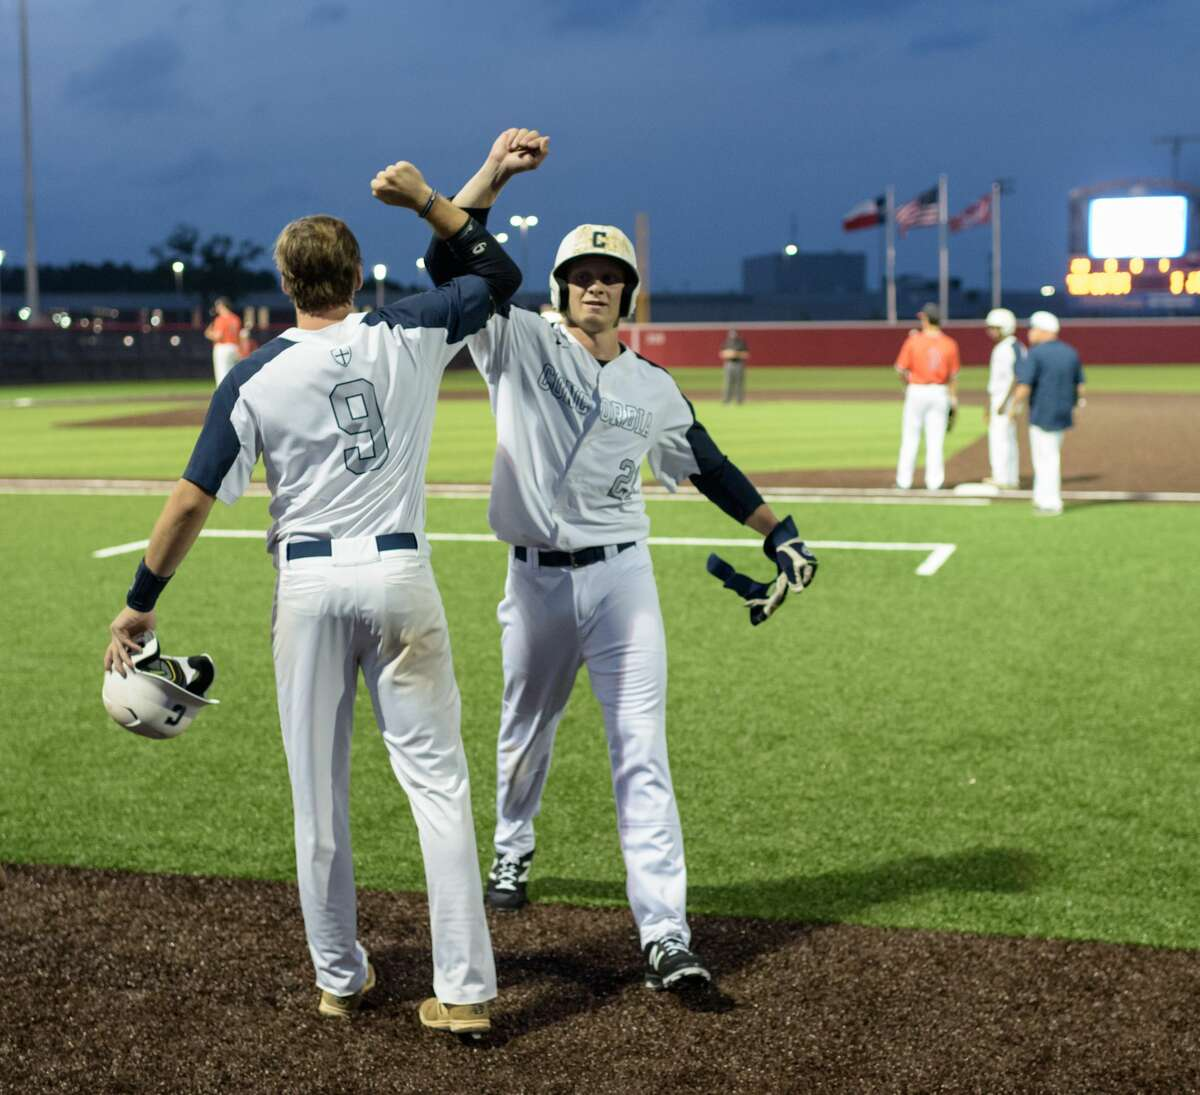 Shane Baz (21) of the Concordia Lutheran Crusaders is congratulated by Terrence Spurlin (9) for his base hit against the St. Pius X Panthers in a TAPPS baseball playoff game on Wednesday, May 10, 2017 at the Crosby High School Baseball Field in Crosby, Texas.